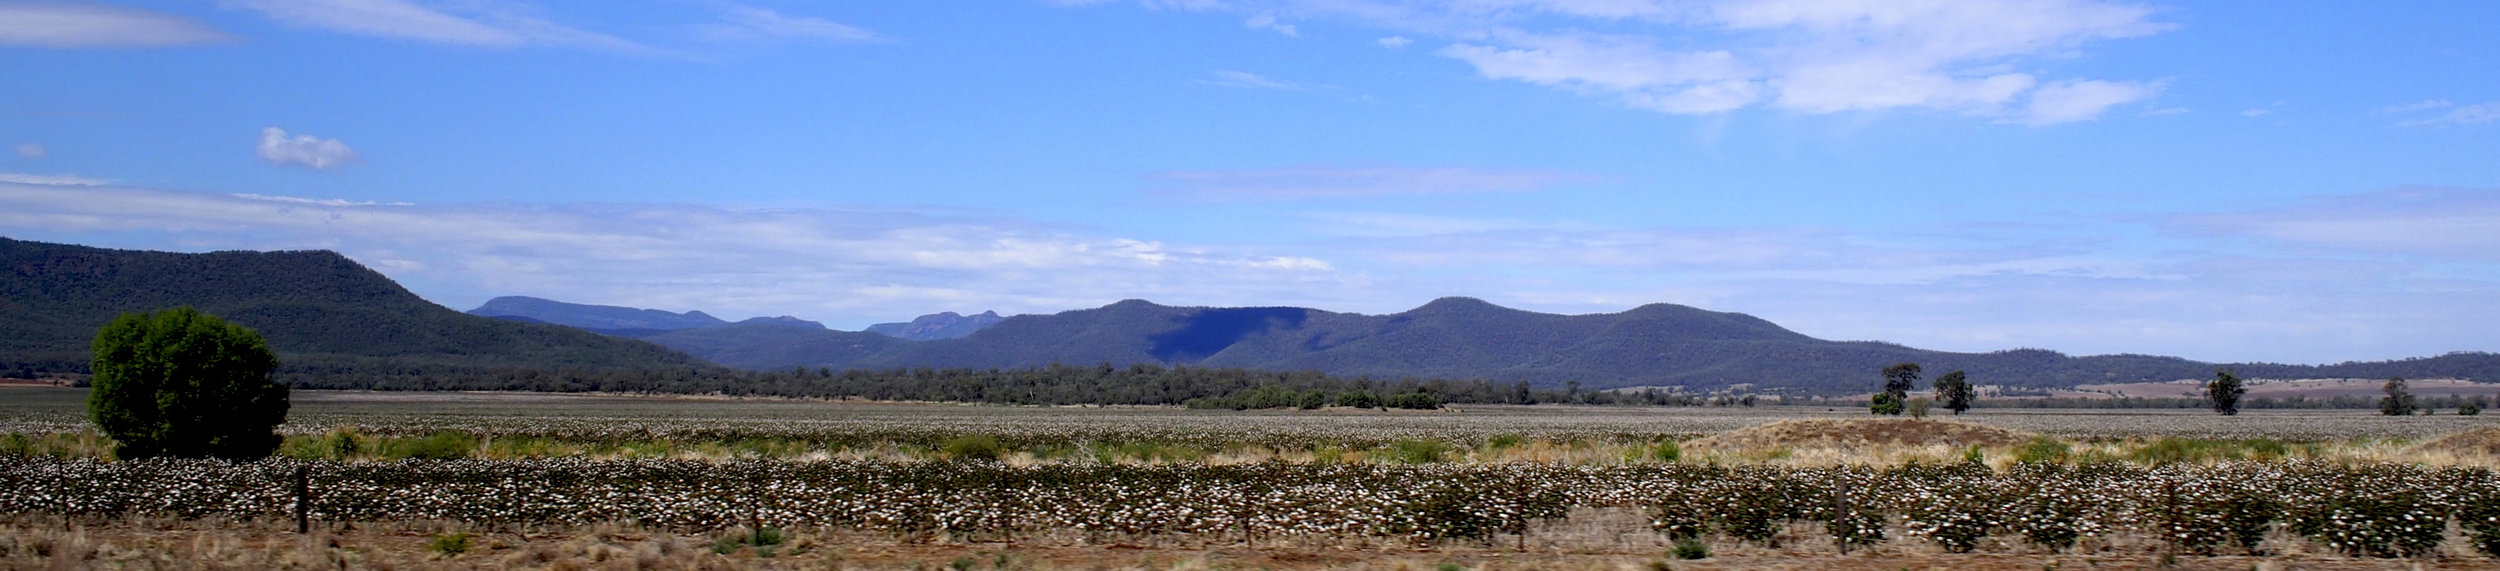 Kaputar National Park with cotton plantations